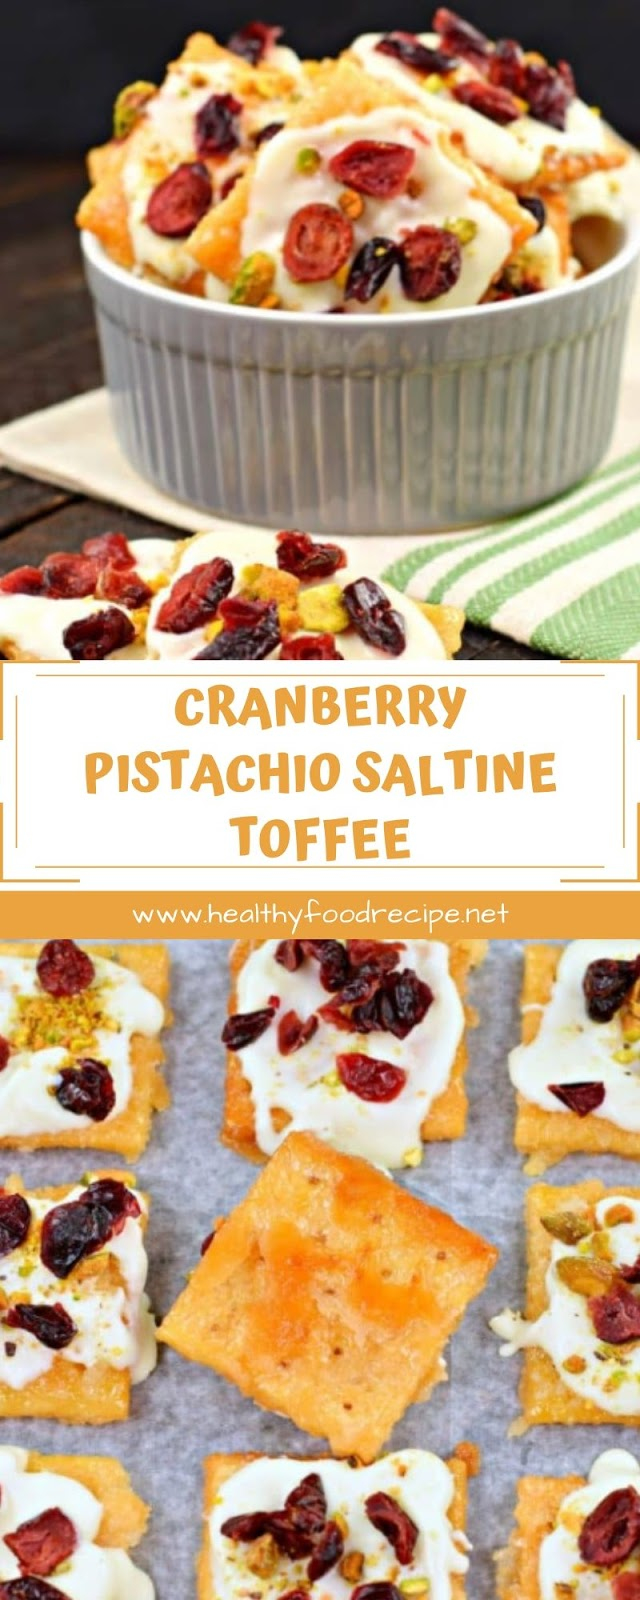 CRANBERRY PISTACHIO SALTINE TOFFEE